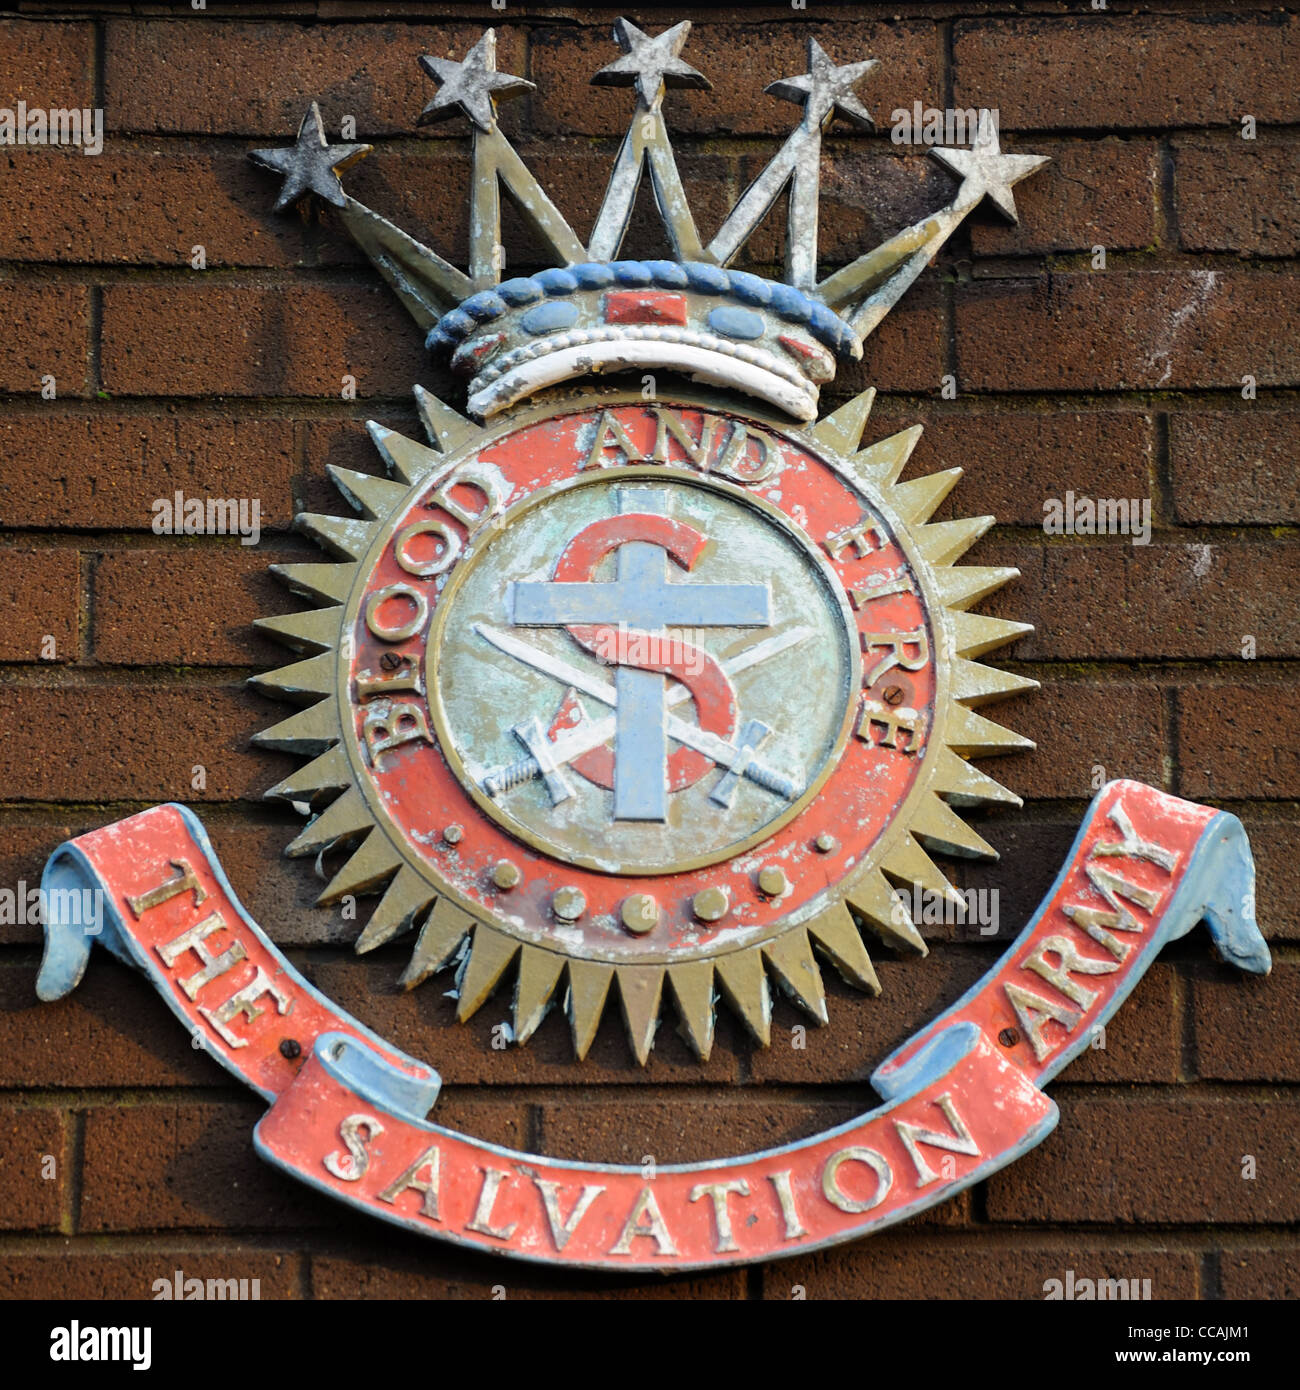 An old weathered salvation army coat of arms on a wall in glasgow an old weathered salvation army coat of arms on a wall in glasgow biocorpaavc Choice Image